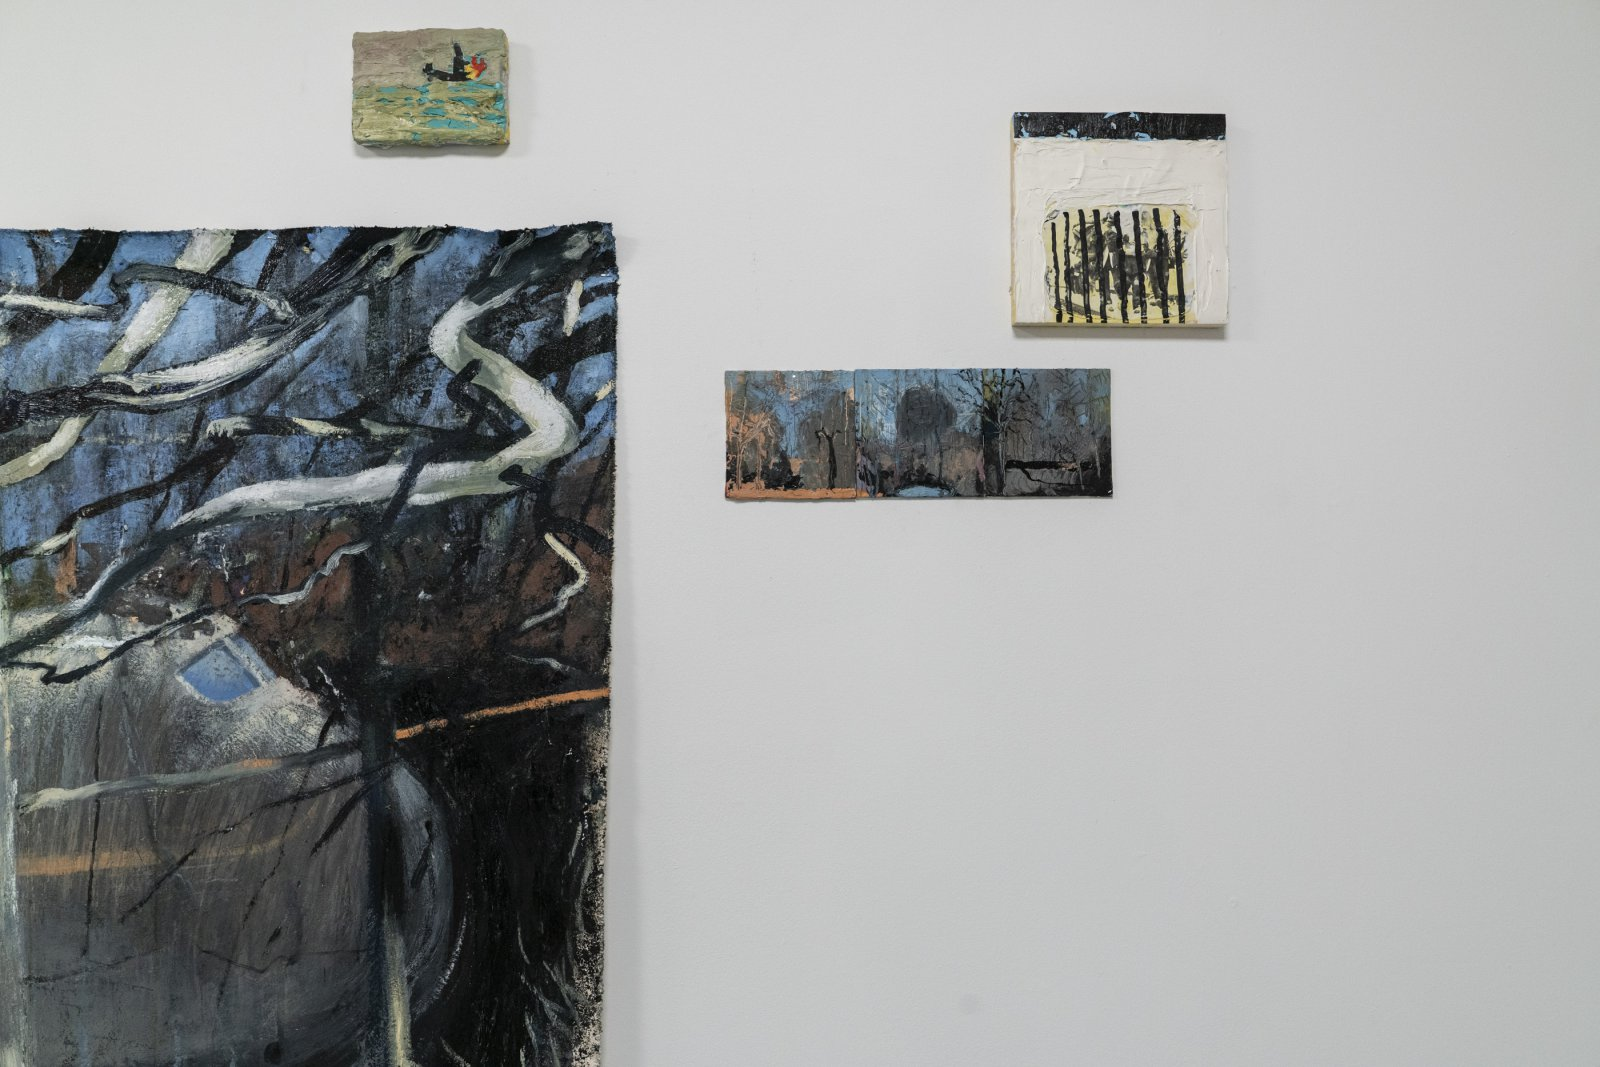 \'Oil and Cement\' opening reception